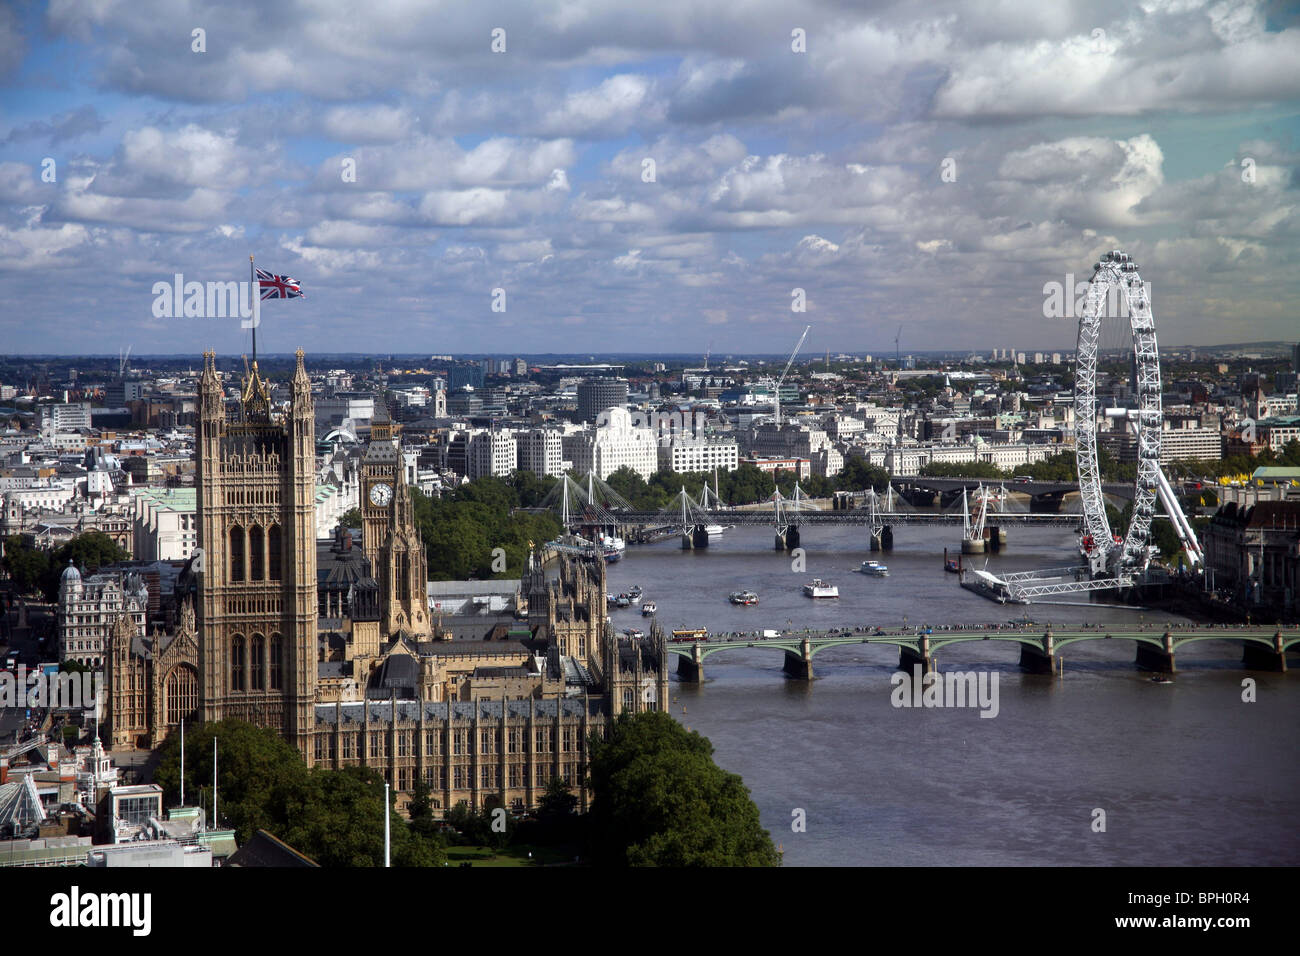 High view of The Palace of Westminster taken from Millbank Tower Stock Photo